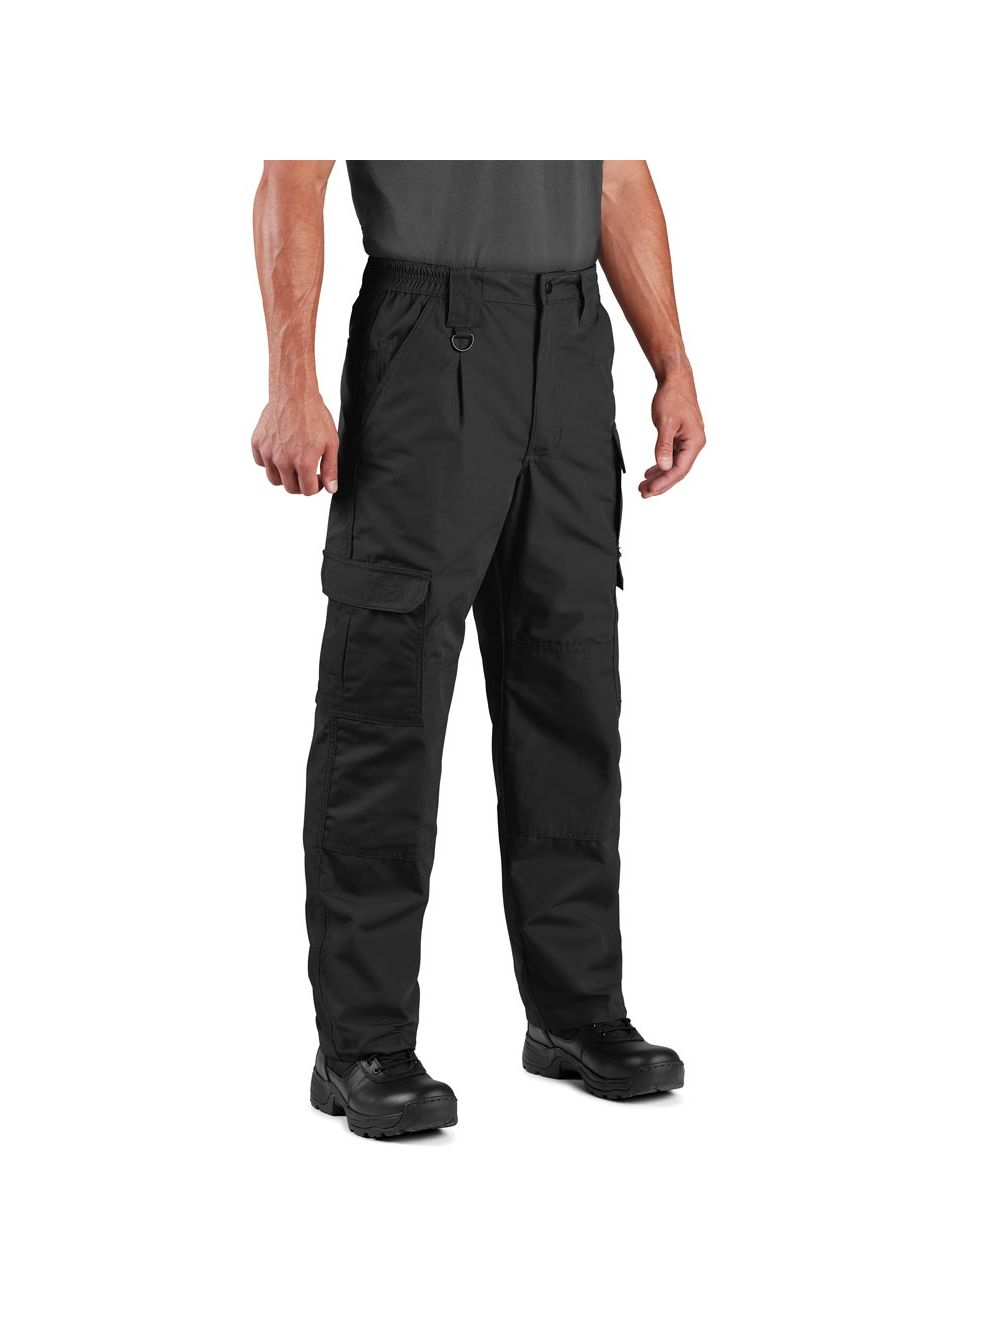 Propper - Mens Lightweight Tactical Pant - Charcoal - F52525